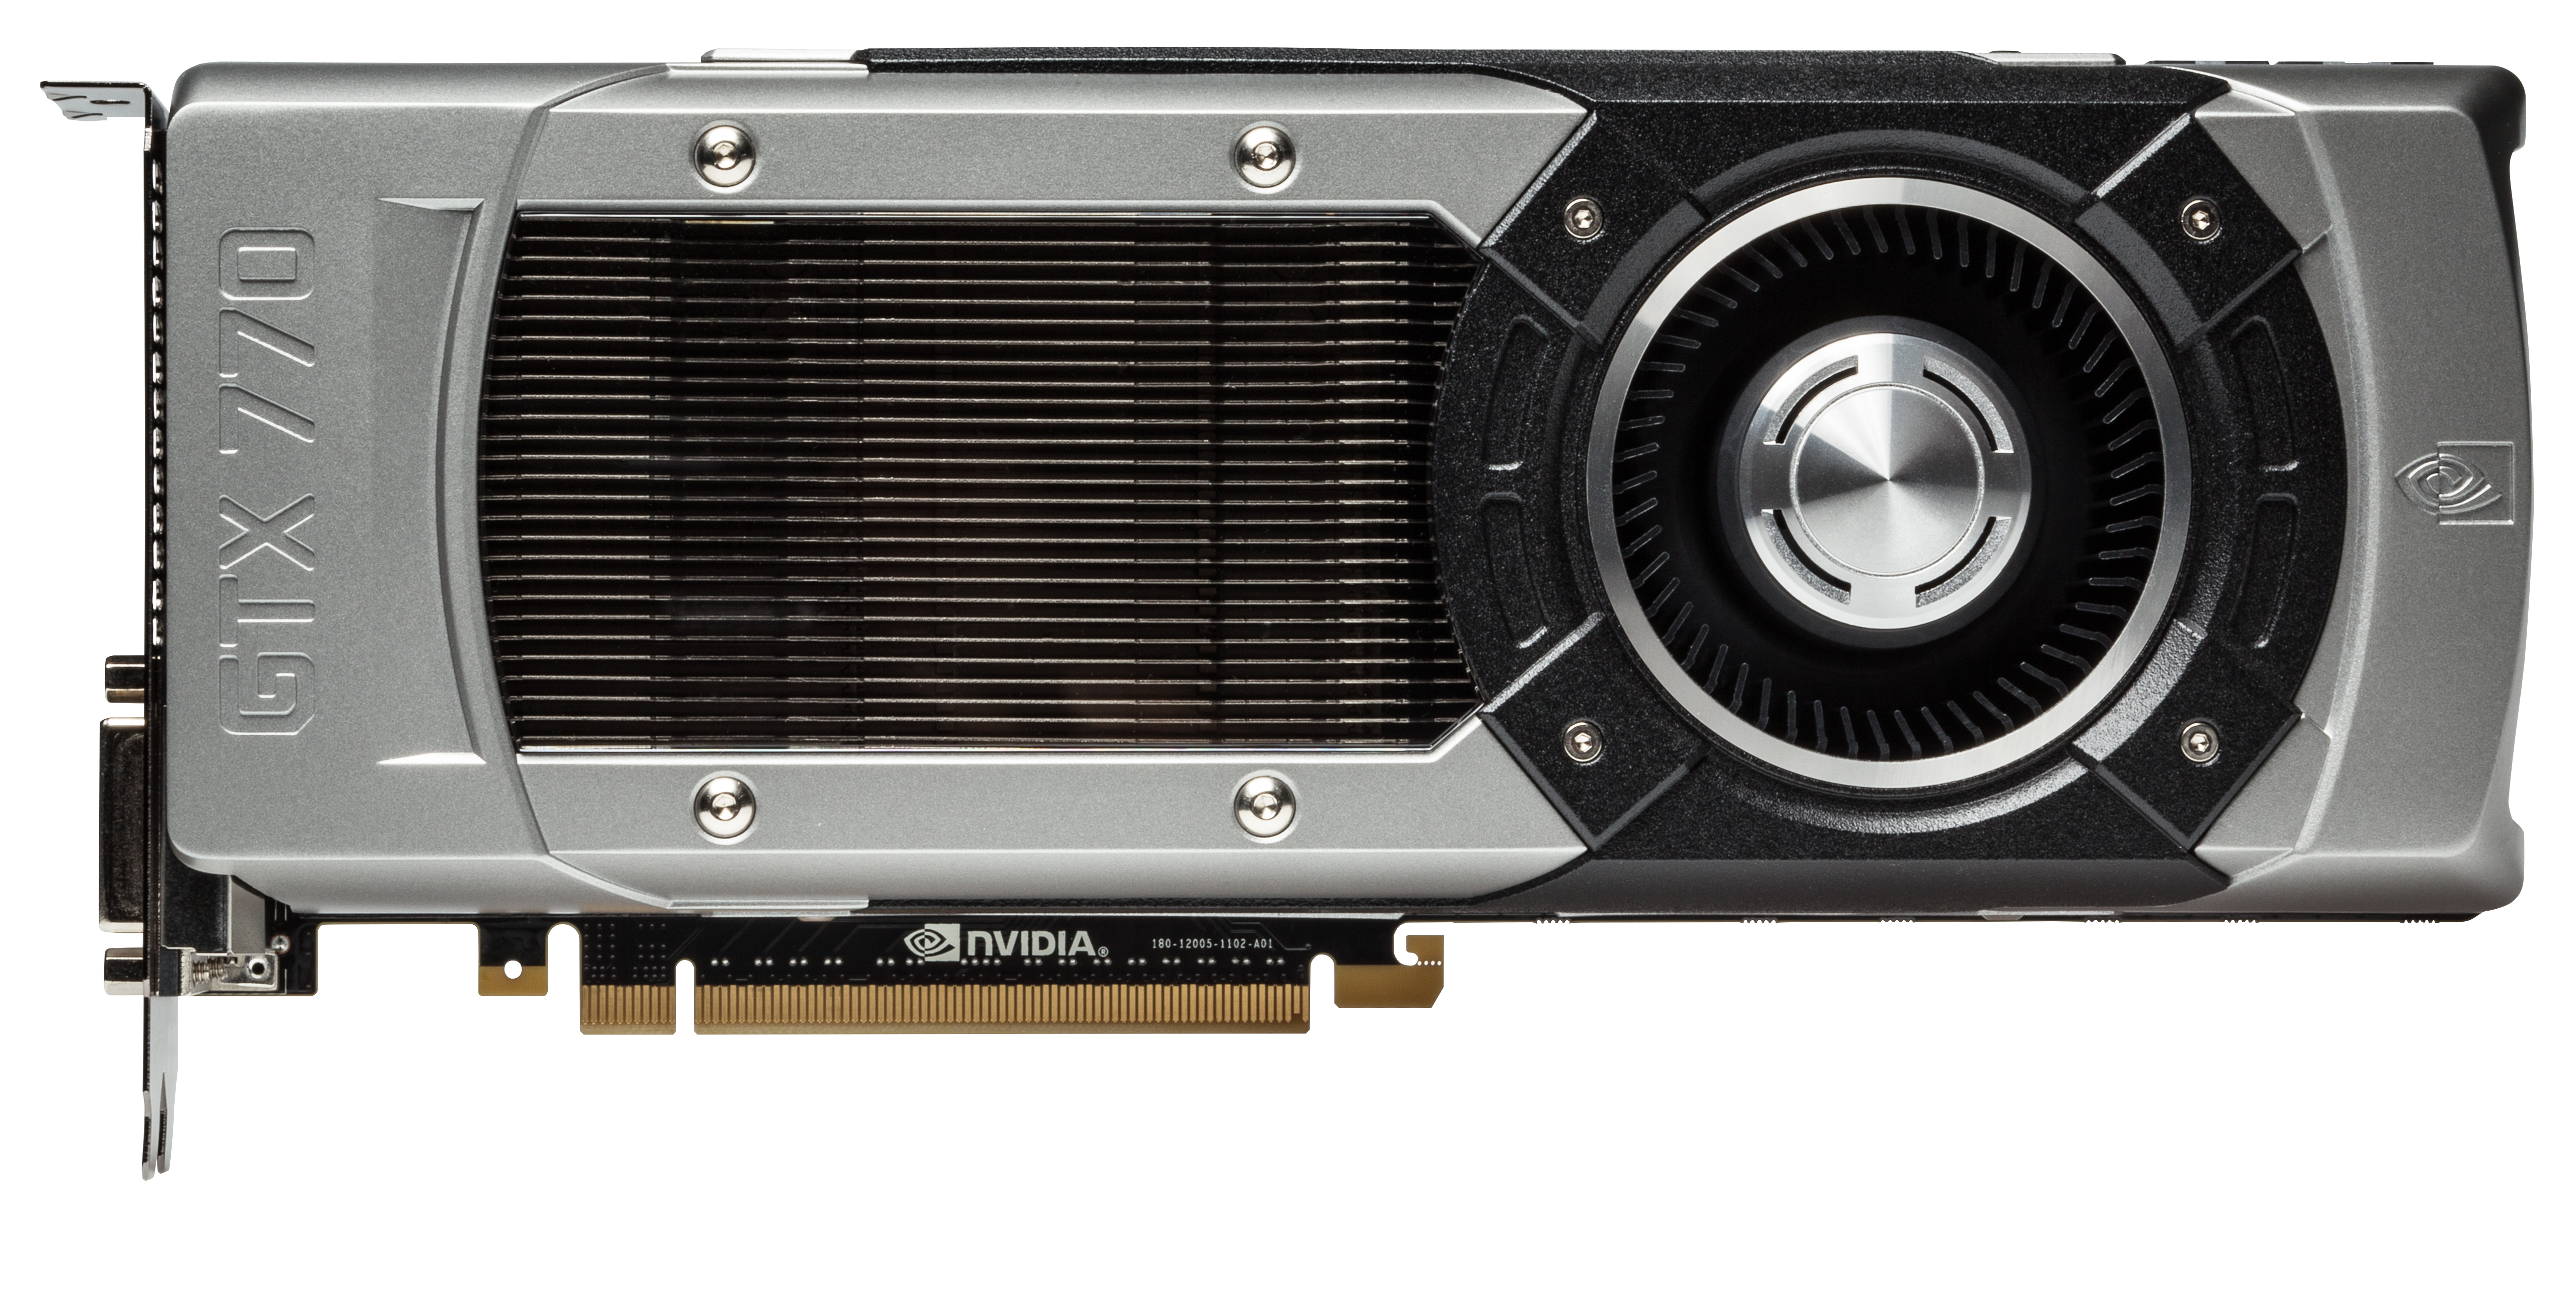 Reaching for 1440p 329 nvidia geforce gtx 770